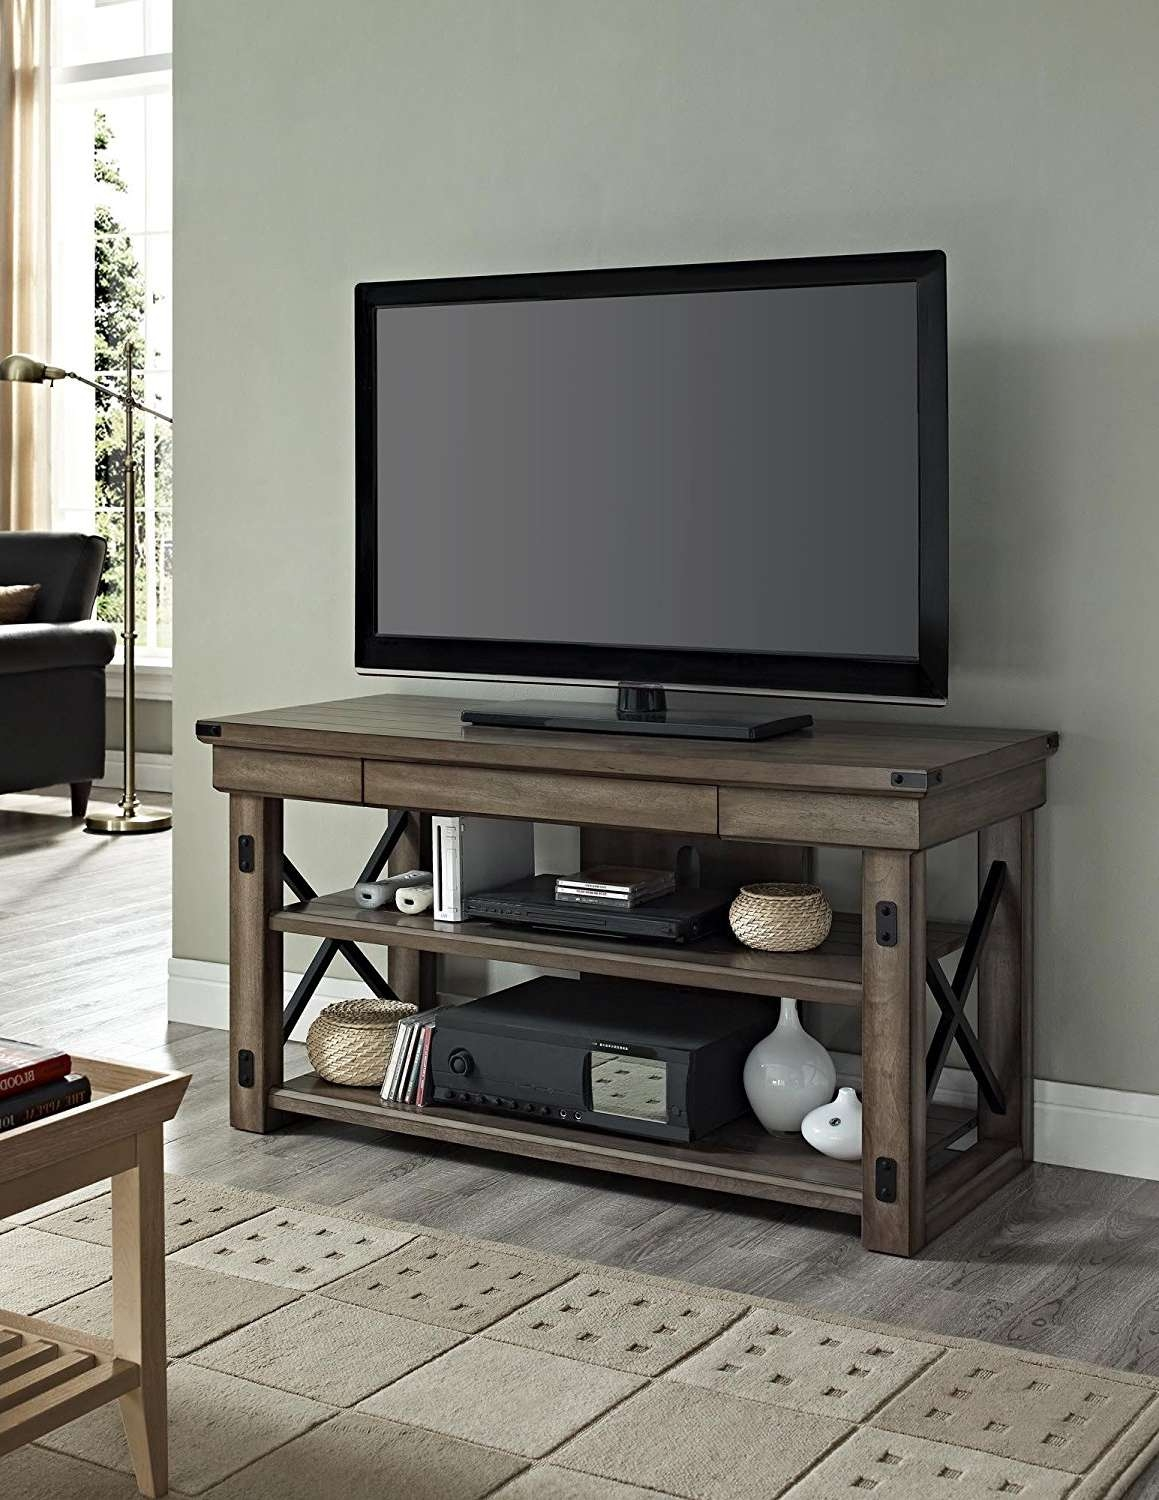 Epic Rustic Tv Stand 55 For Home Remodel Ideas With Rustic Tv For Rustic Tv Stands (View 4 of 20)